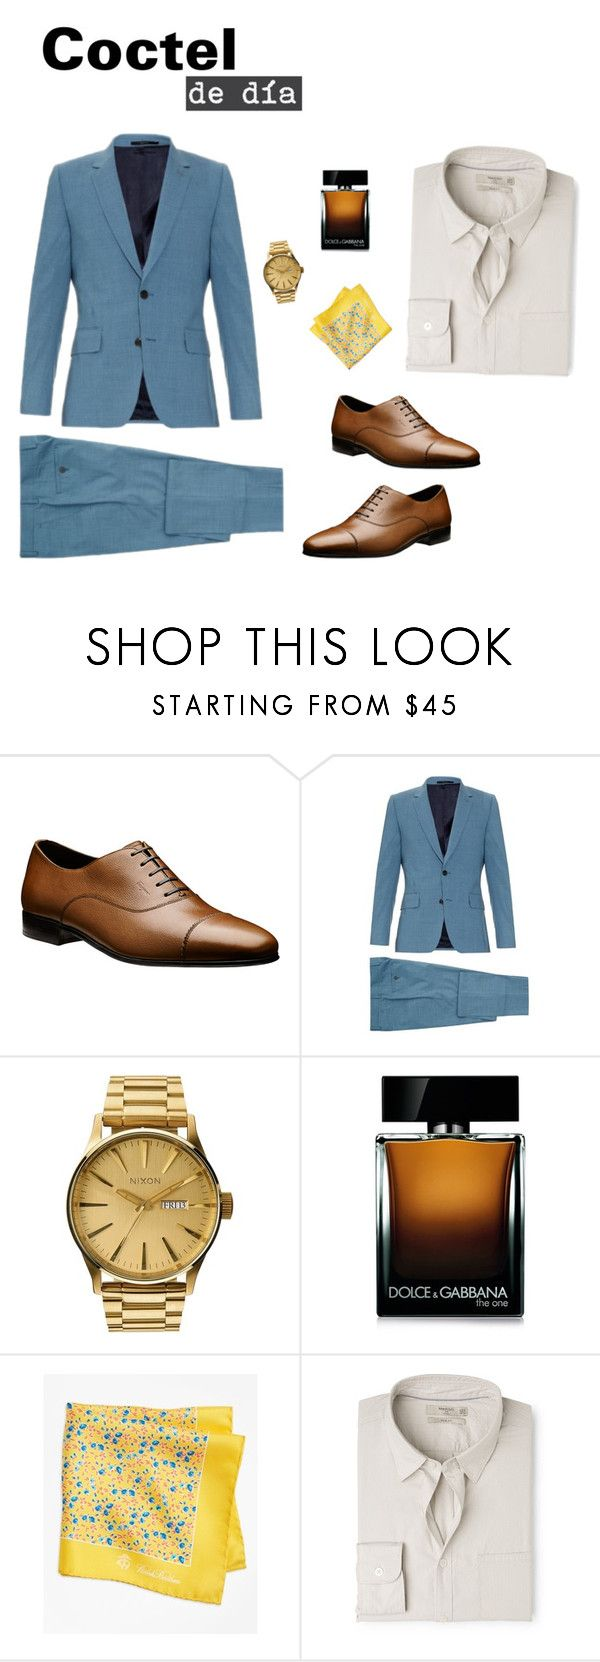 """Coctel de día"" by arimacias on Polyvore featuring Paul Smith, Nixon, Dolce&Gabbana, Brooks Brothers, MANGO MAN, men's fashion, menswear, menstyle, CocktailParty y Firgun"